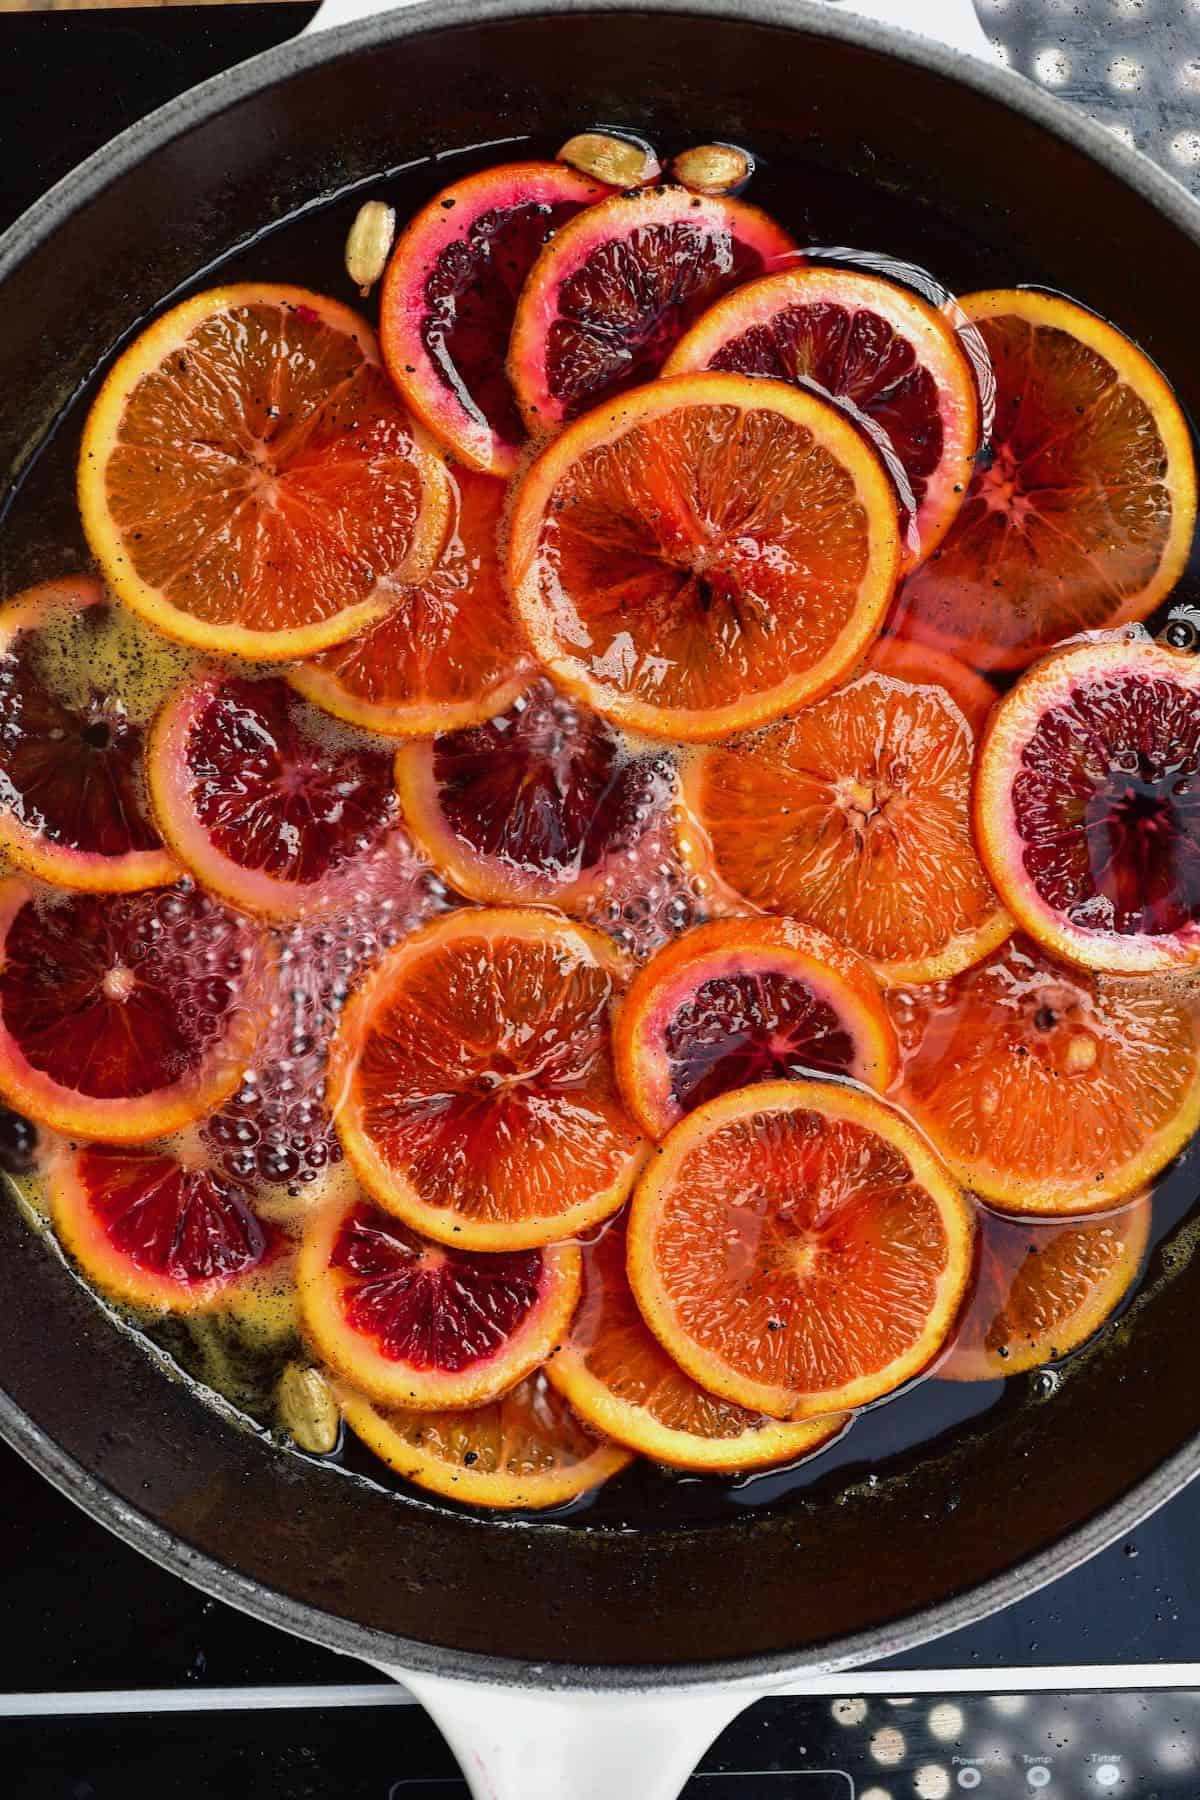 Orange slices in a pan with sugar syrup